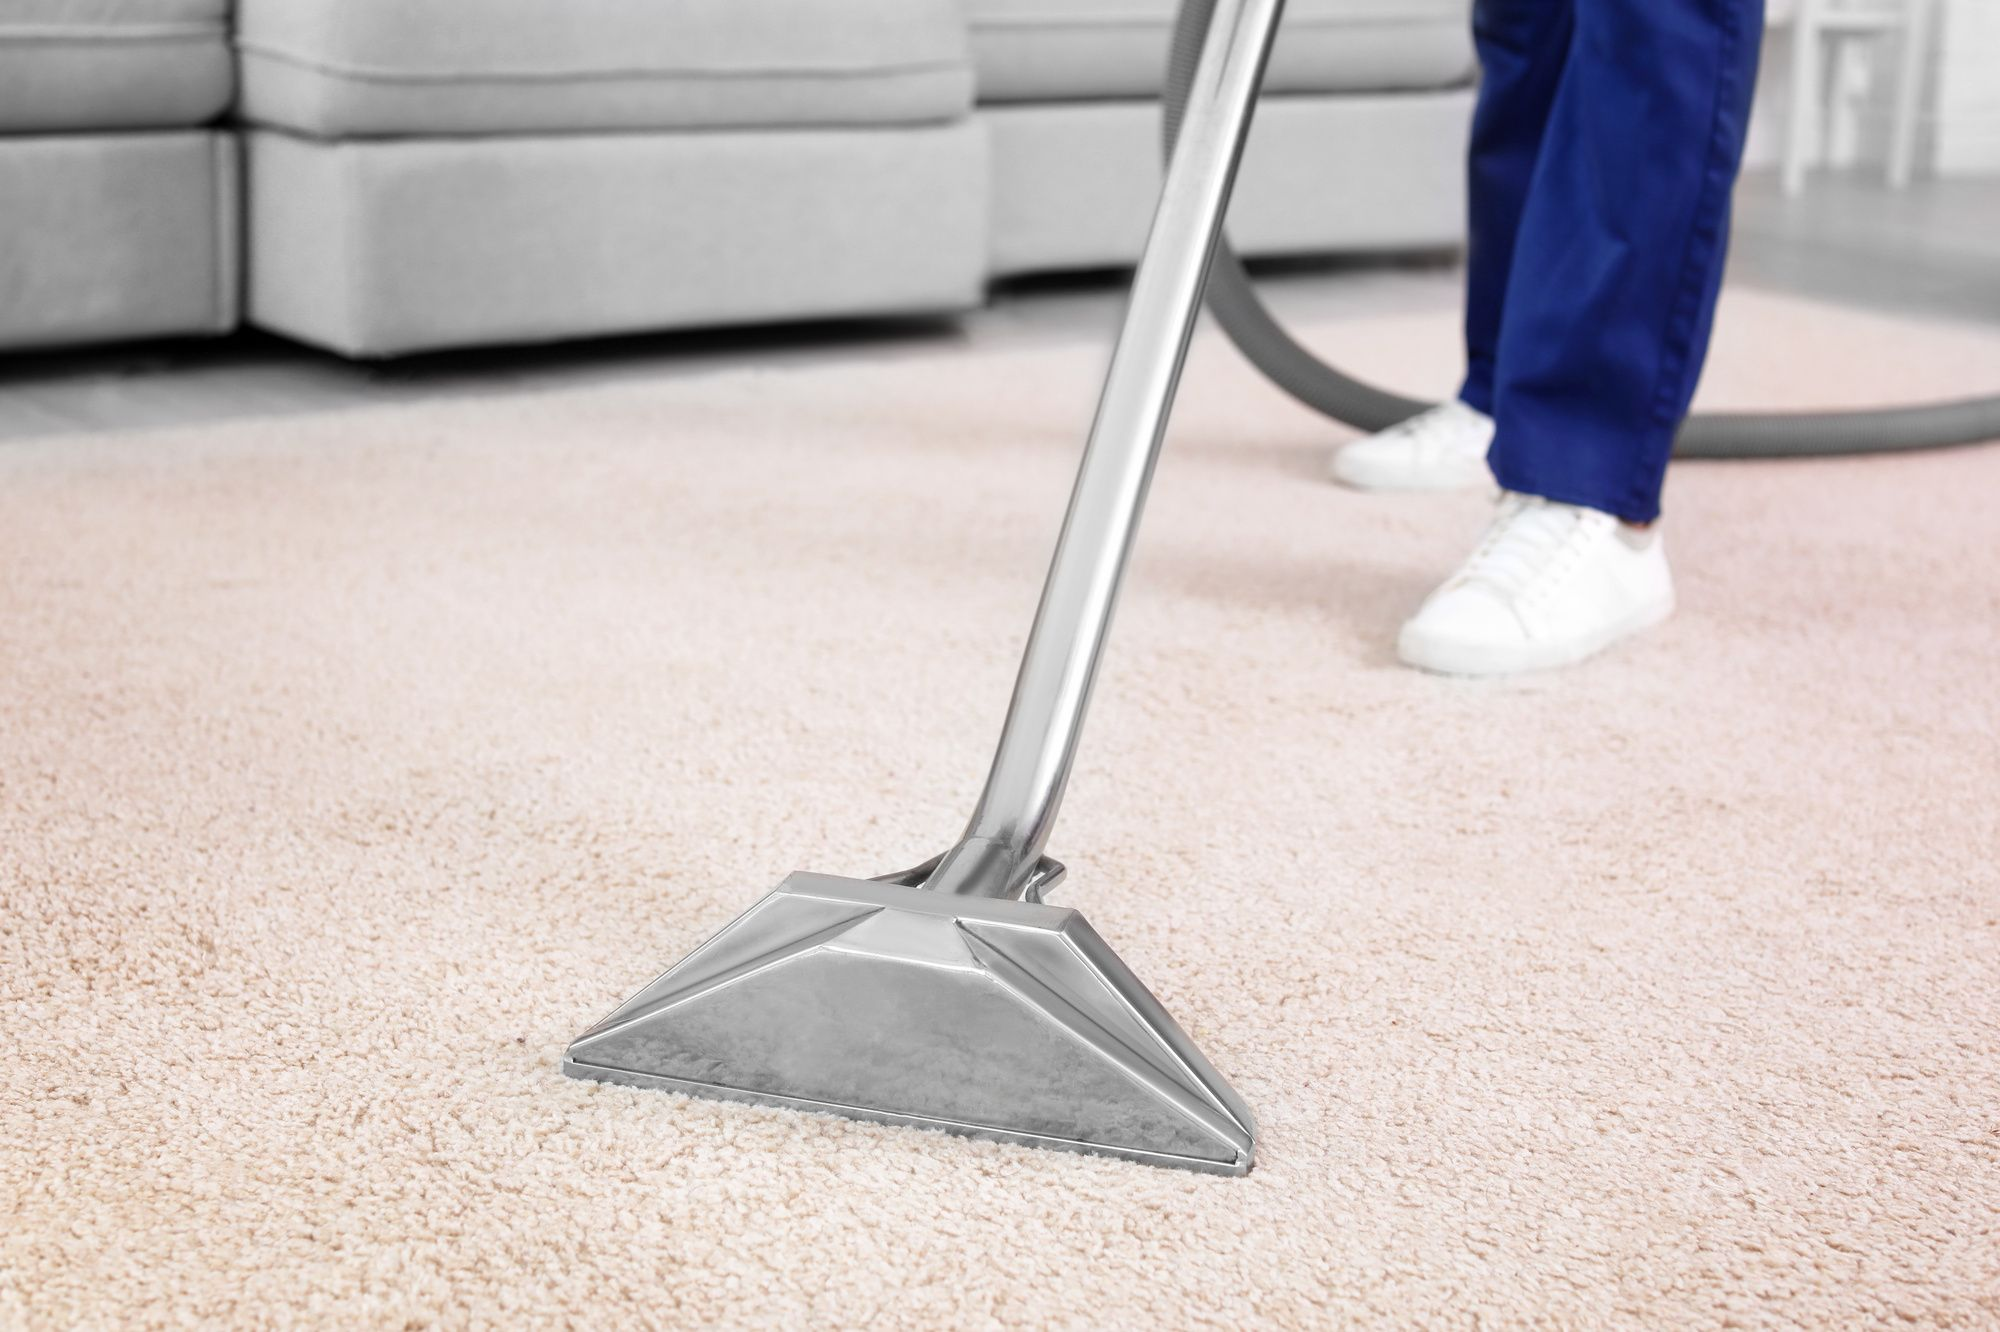 How To Remove Dirt Filtration From Your Carpets How To Clean